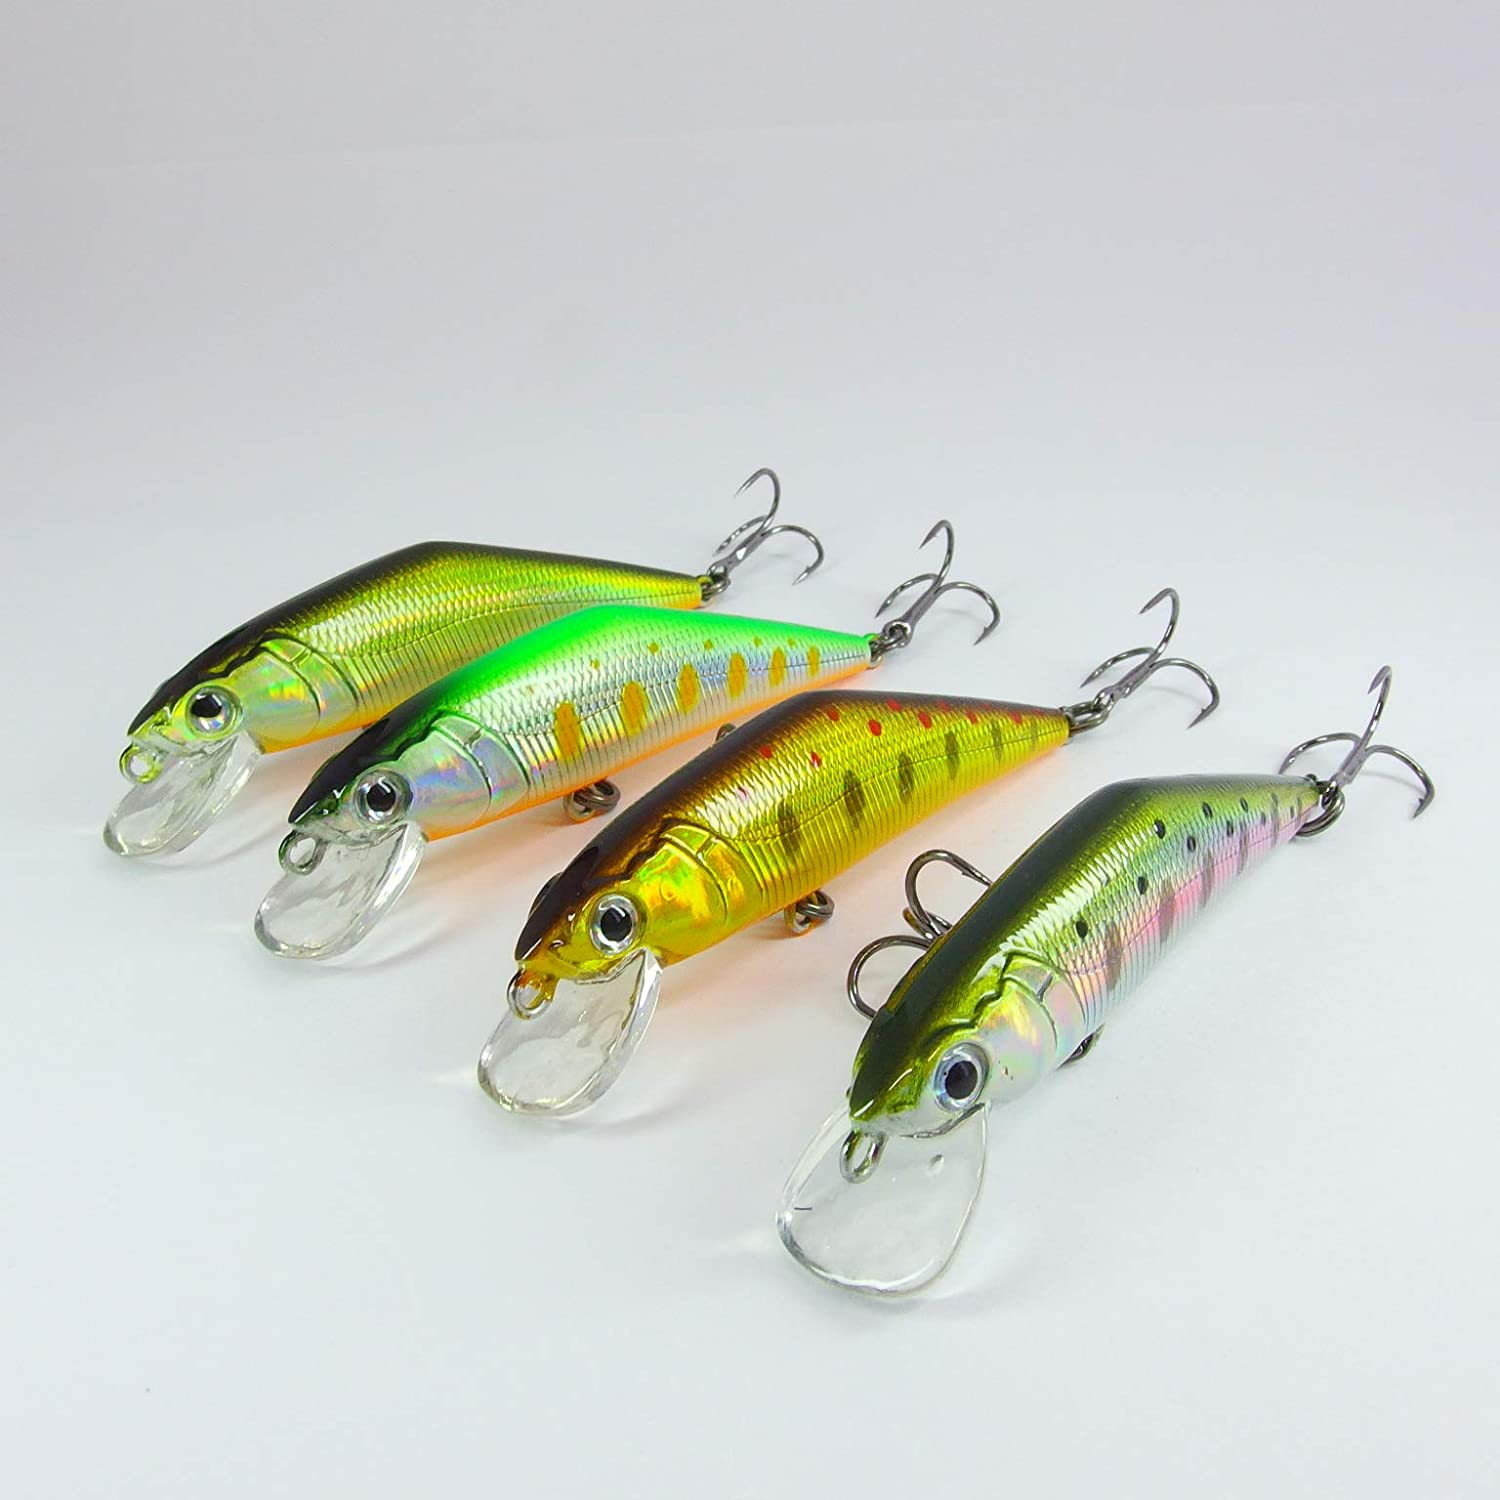 momolures Set Package x Heavy Sinking Minnow 63mm 7.5g d-contact style for Trout Pike Perch Lure Fishing